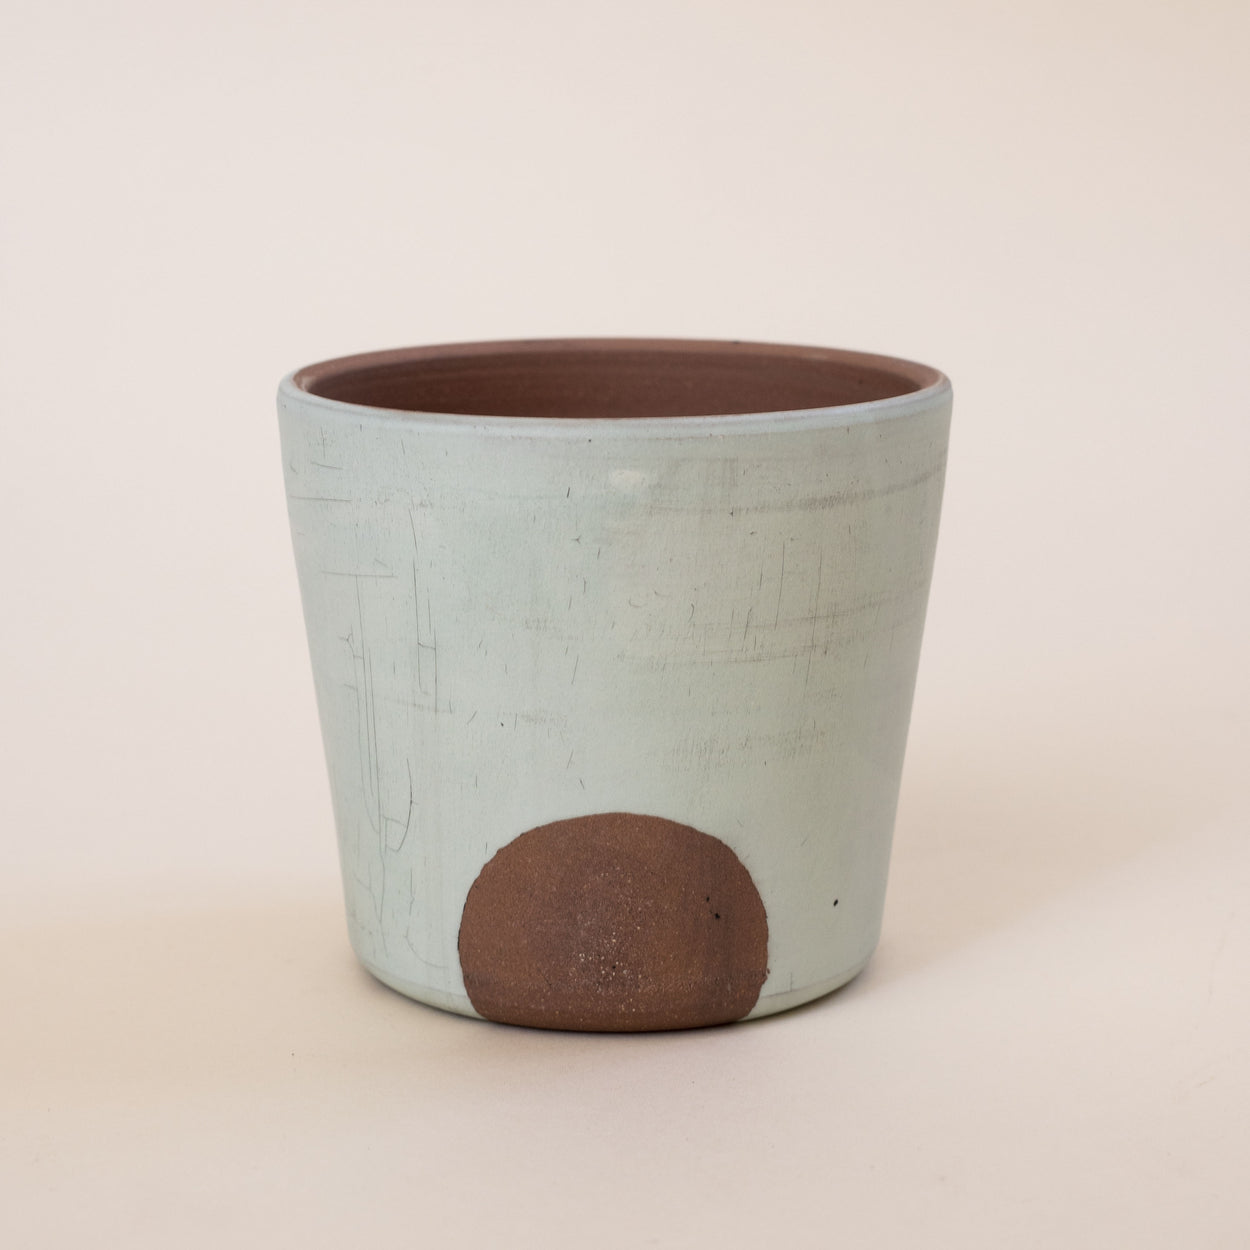 David Kring Ceramics - Mini Planter